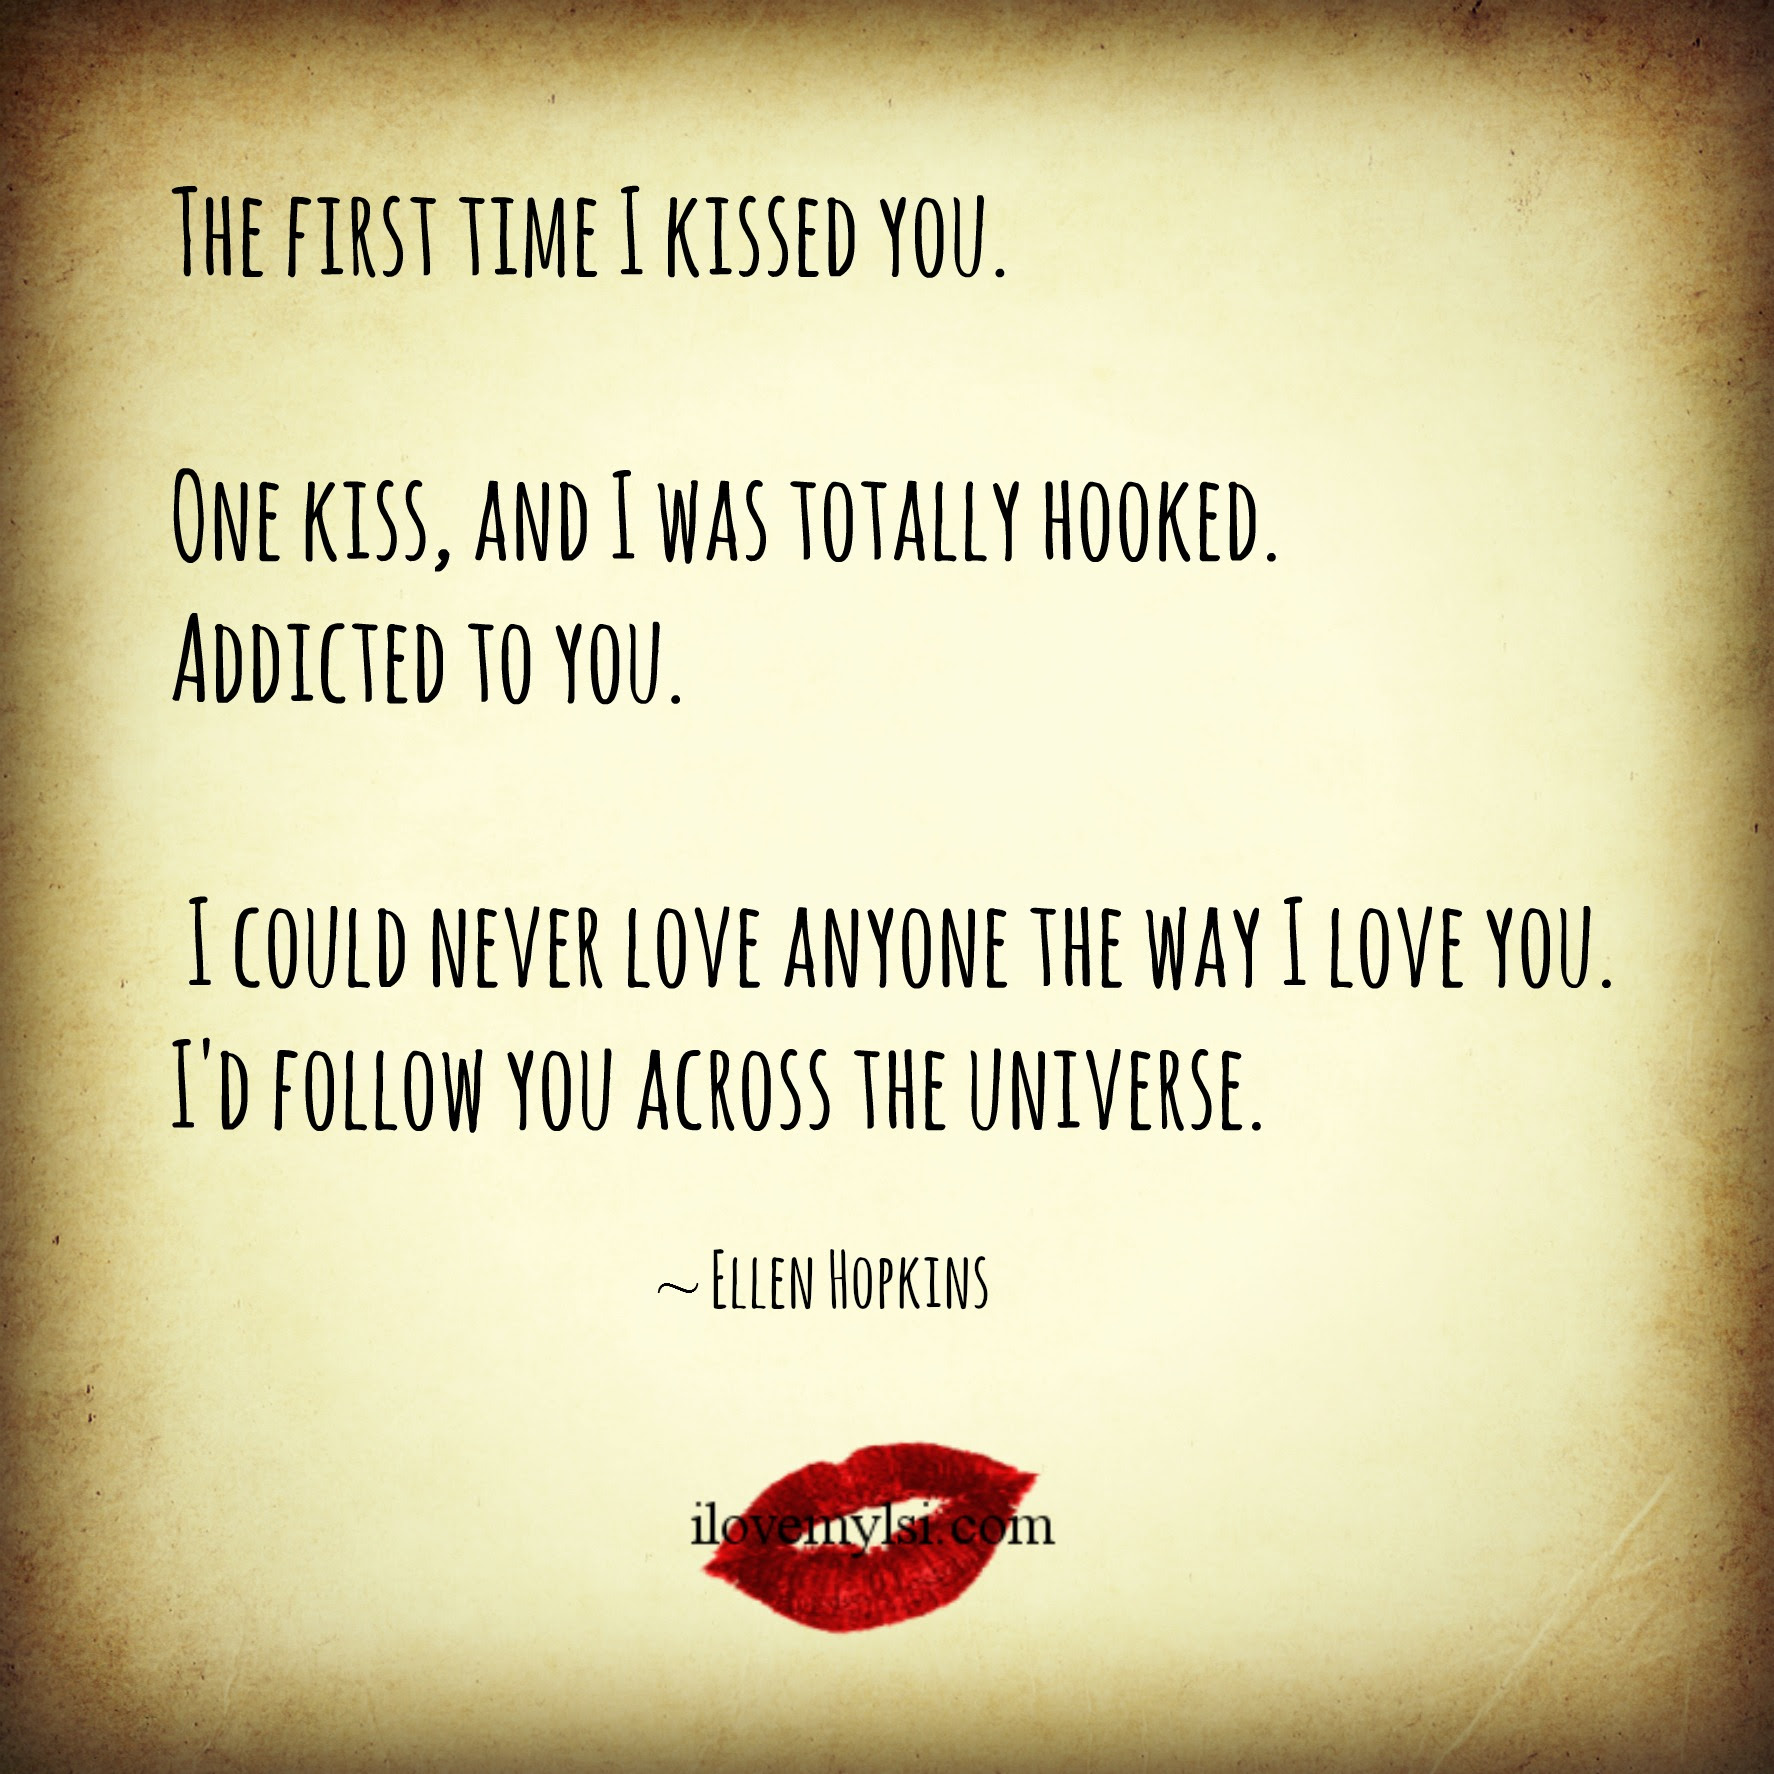 The first time I kissed you